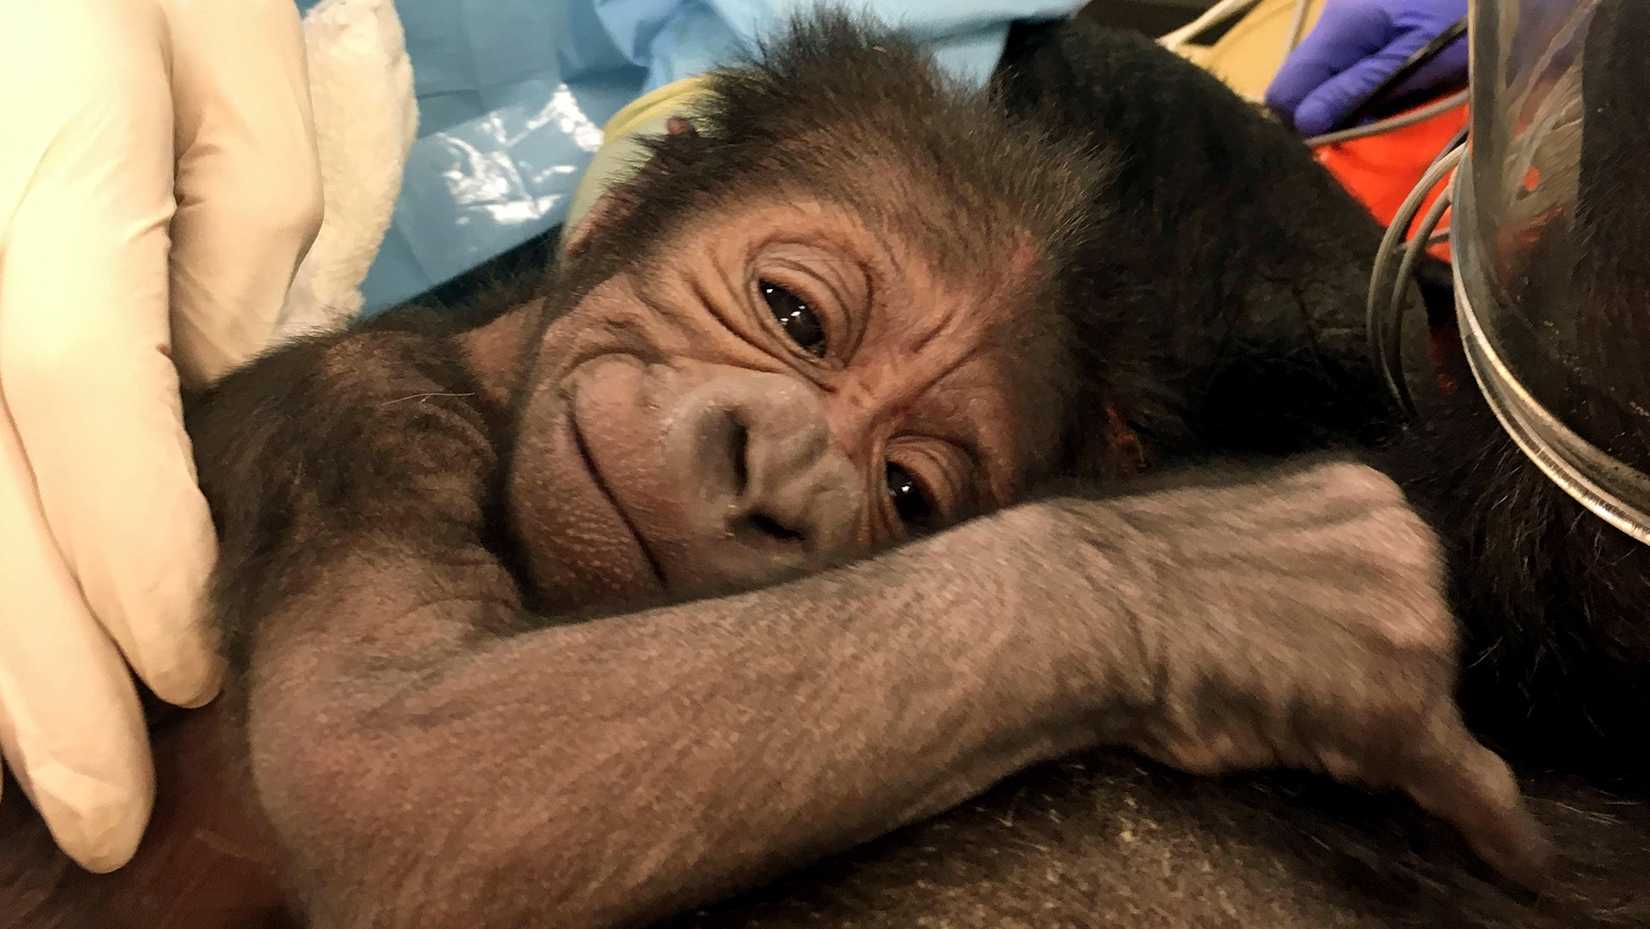 This photo provided by the Philadelphia Zoo shows a newly born western lowland gorilla resting on its mother Kira in Philadelphia. Kira had a difficult labor that required medical techniques typically used for delivering human babies. Due to concerns about her and the baby's health, the zoo brought in a team from the veterinary and human medical field. After 1 ½ hours the team delivered the baby, Friday, June 2, 2017, using forceps and episiotomy.